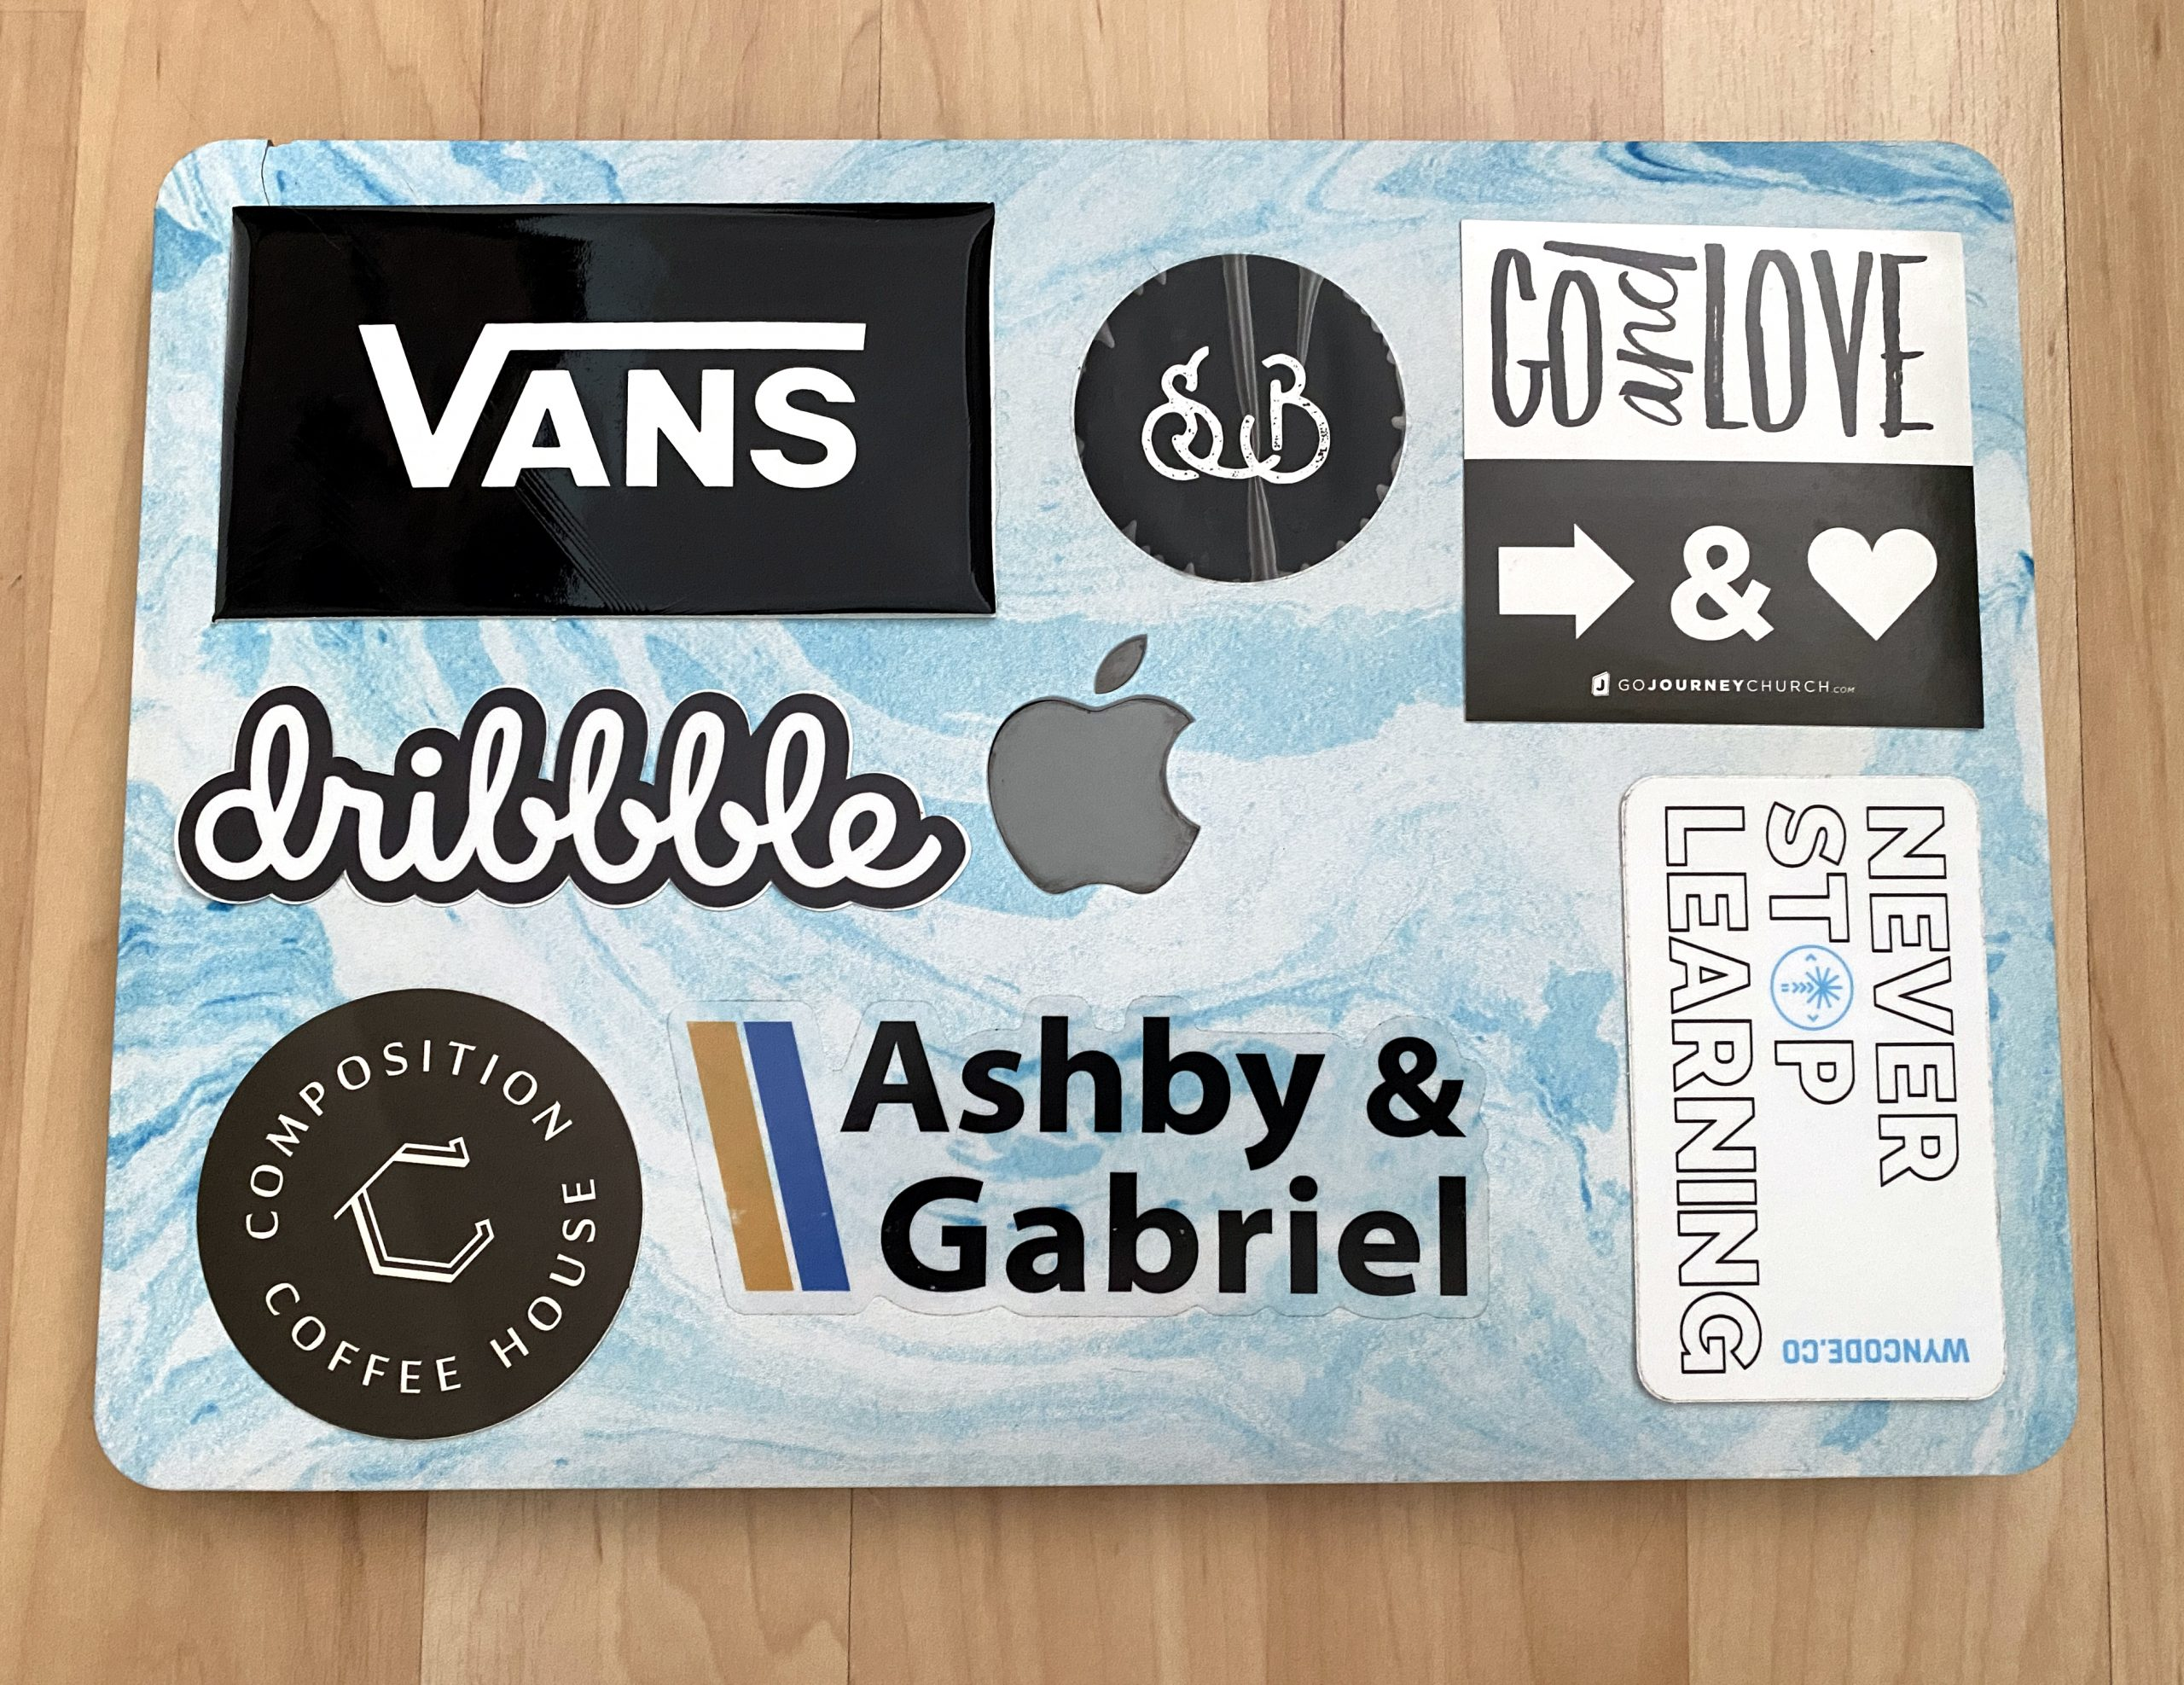 Here's How Stickers Could Become Your Most Powerful Marketing Channel